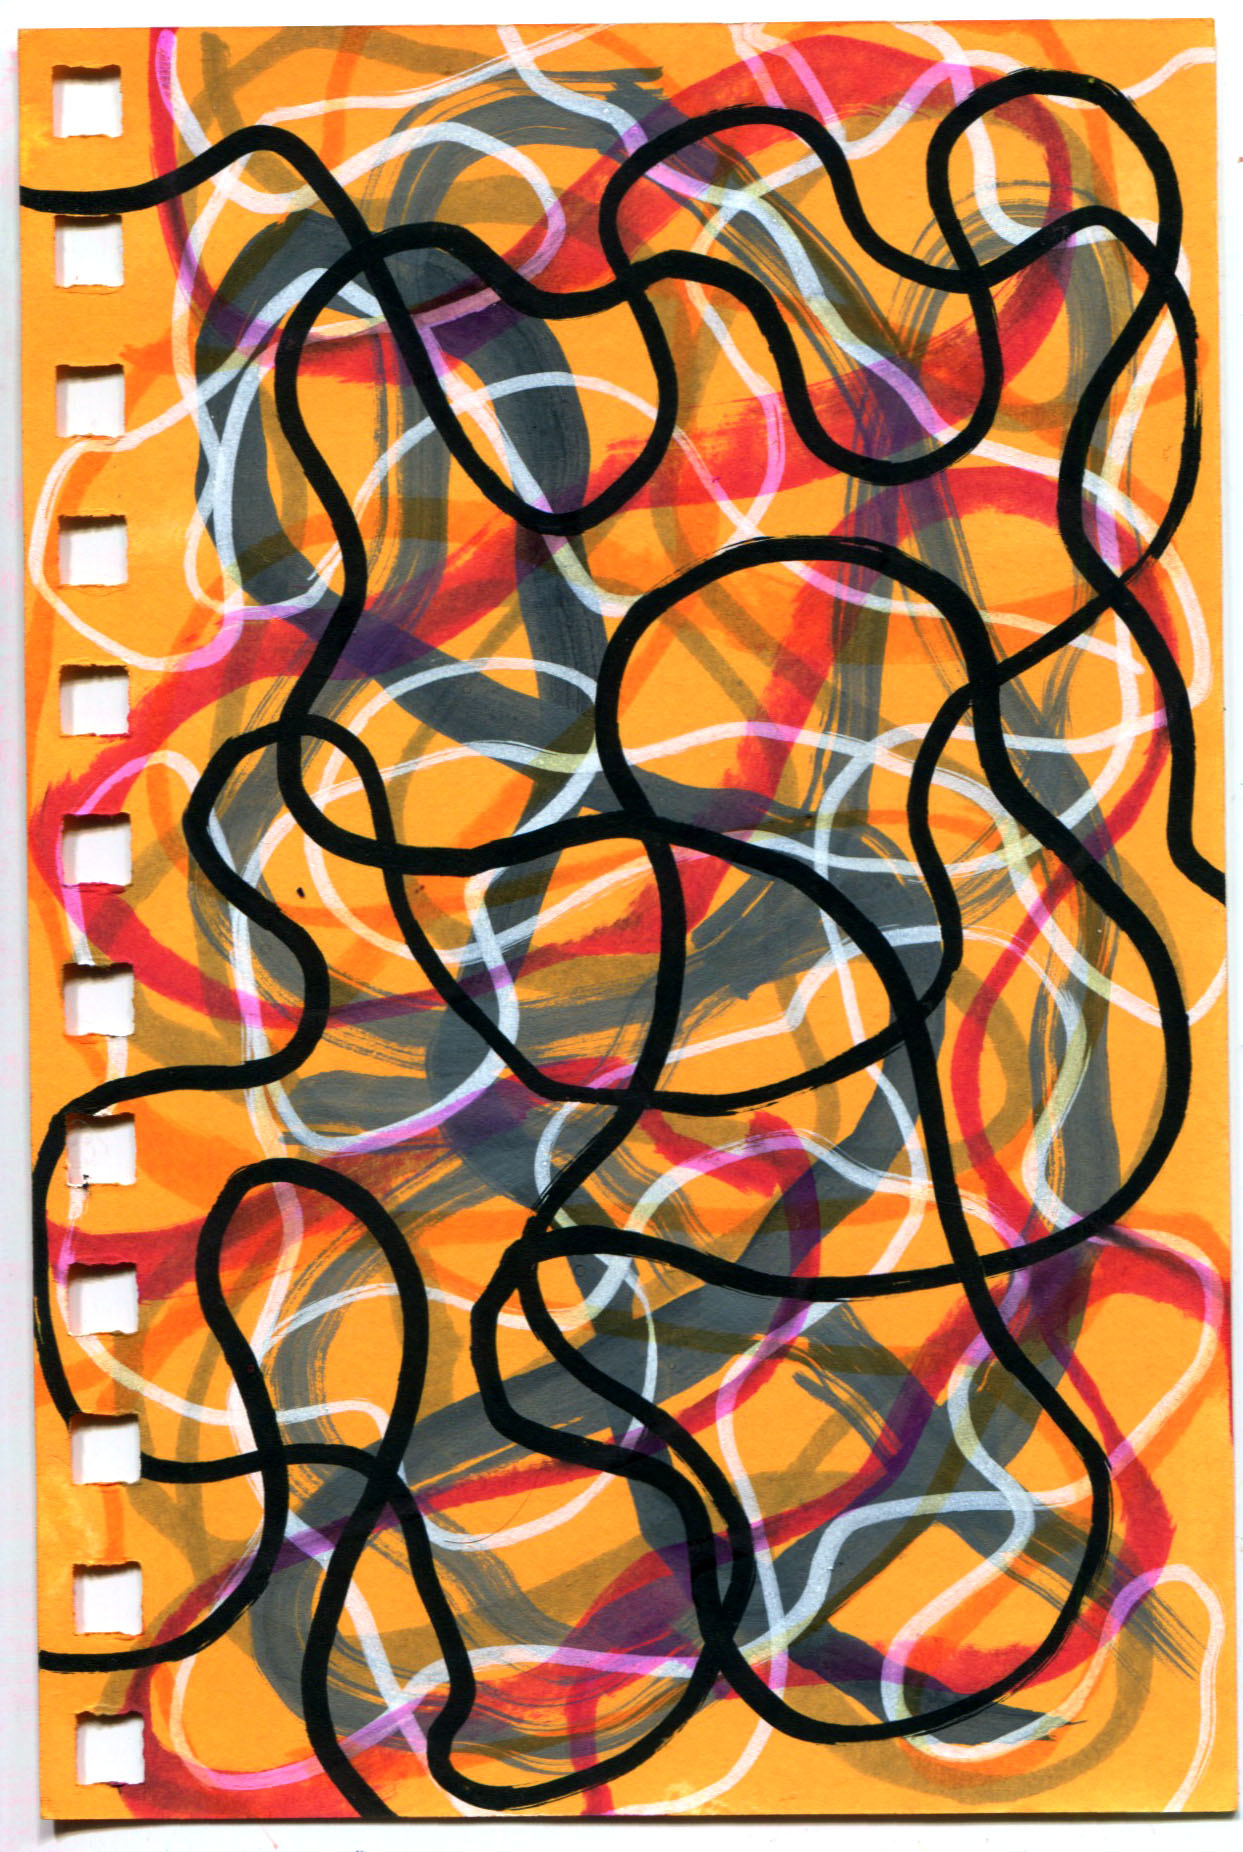 Squiggle 2